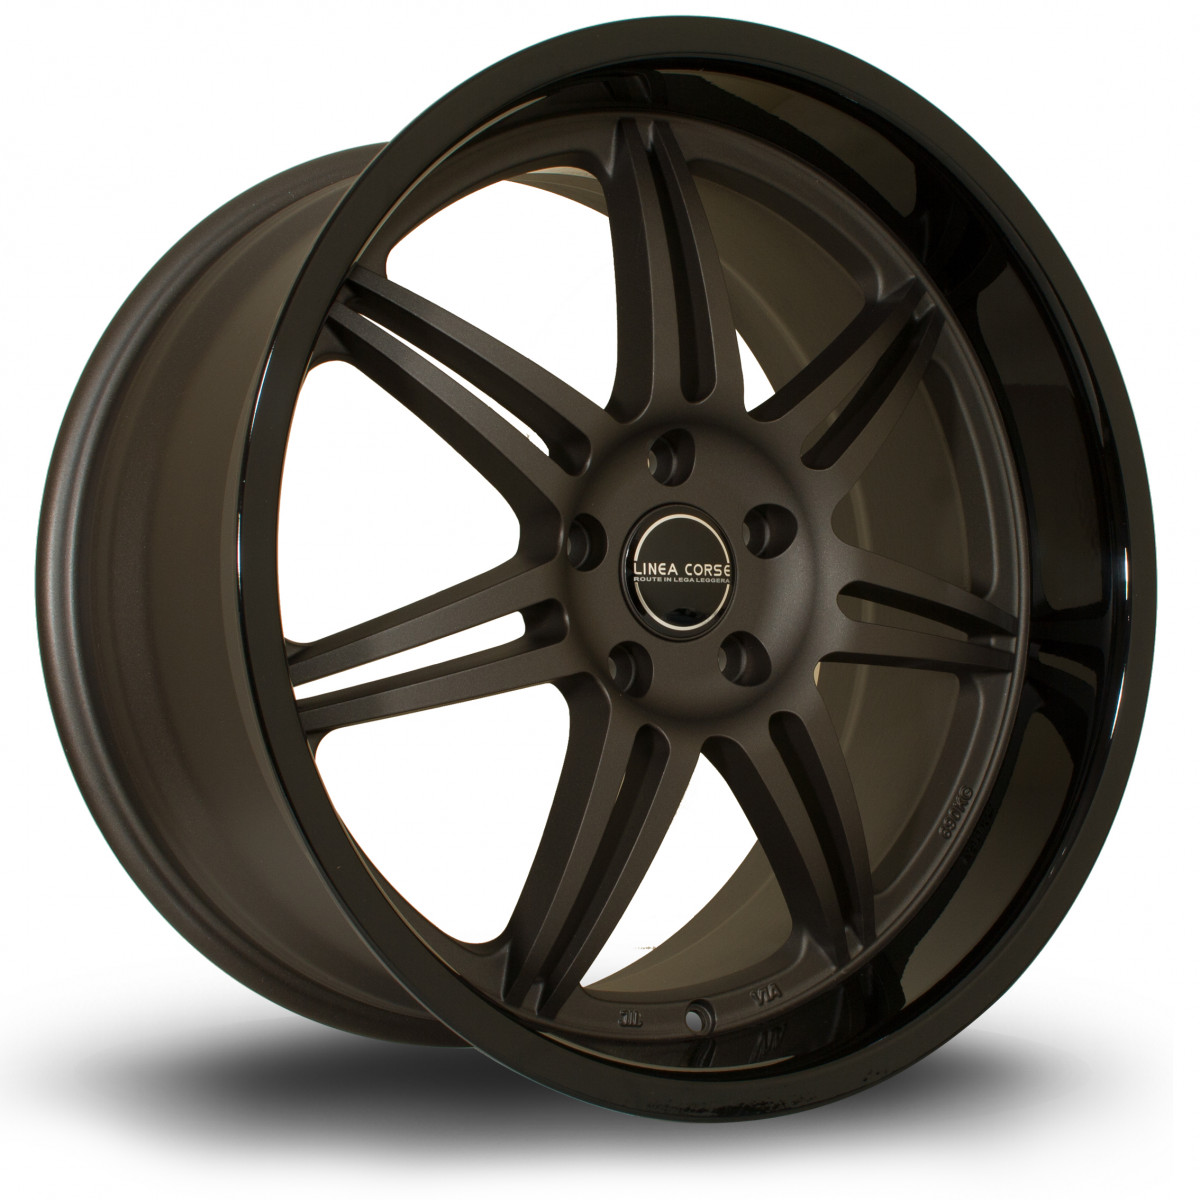 Dyna 19x10 5x120 ET37 Flat Gunmetal with Gloss Black Lip